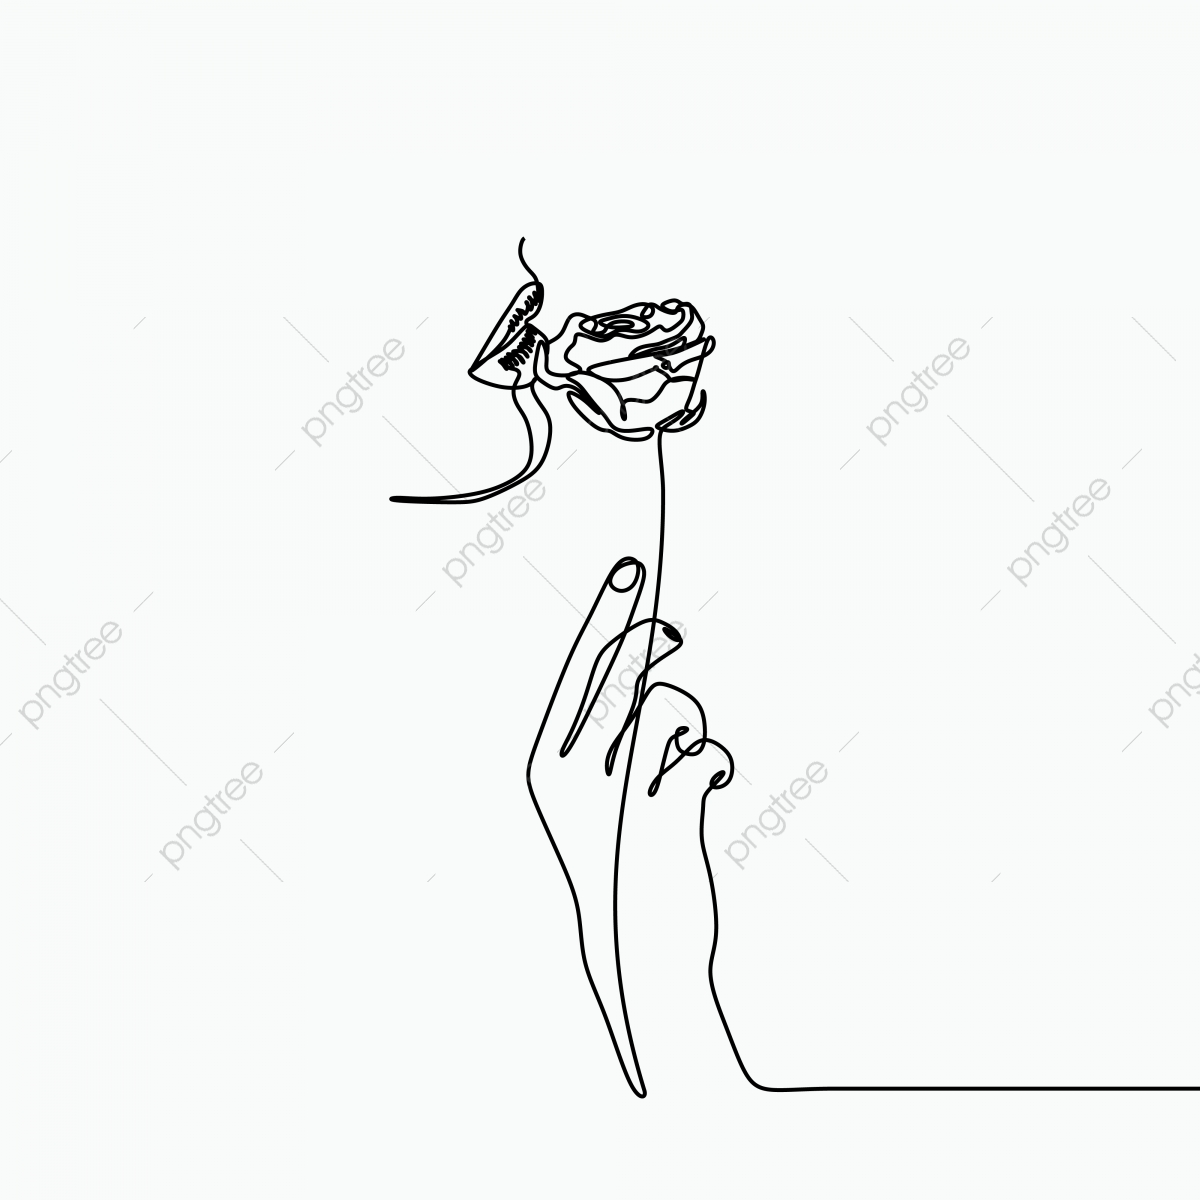 One Line Art Drawing With A Hand Hand Clipart Rose Flower And Mouth Png And Vector With Transparent Background For Free Download Pikbest has 195737 hand drawn png design images templates for free. https pngtree com freepng one line art drawing with a hand 3668295 html